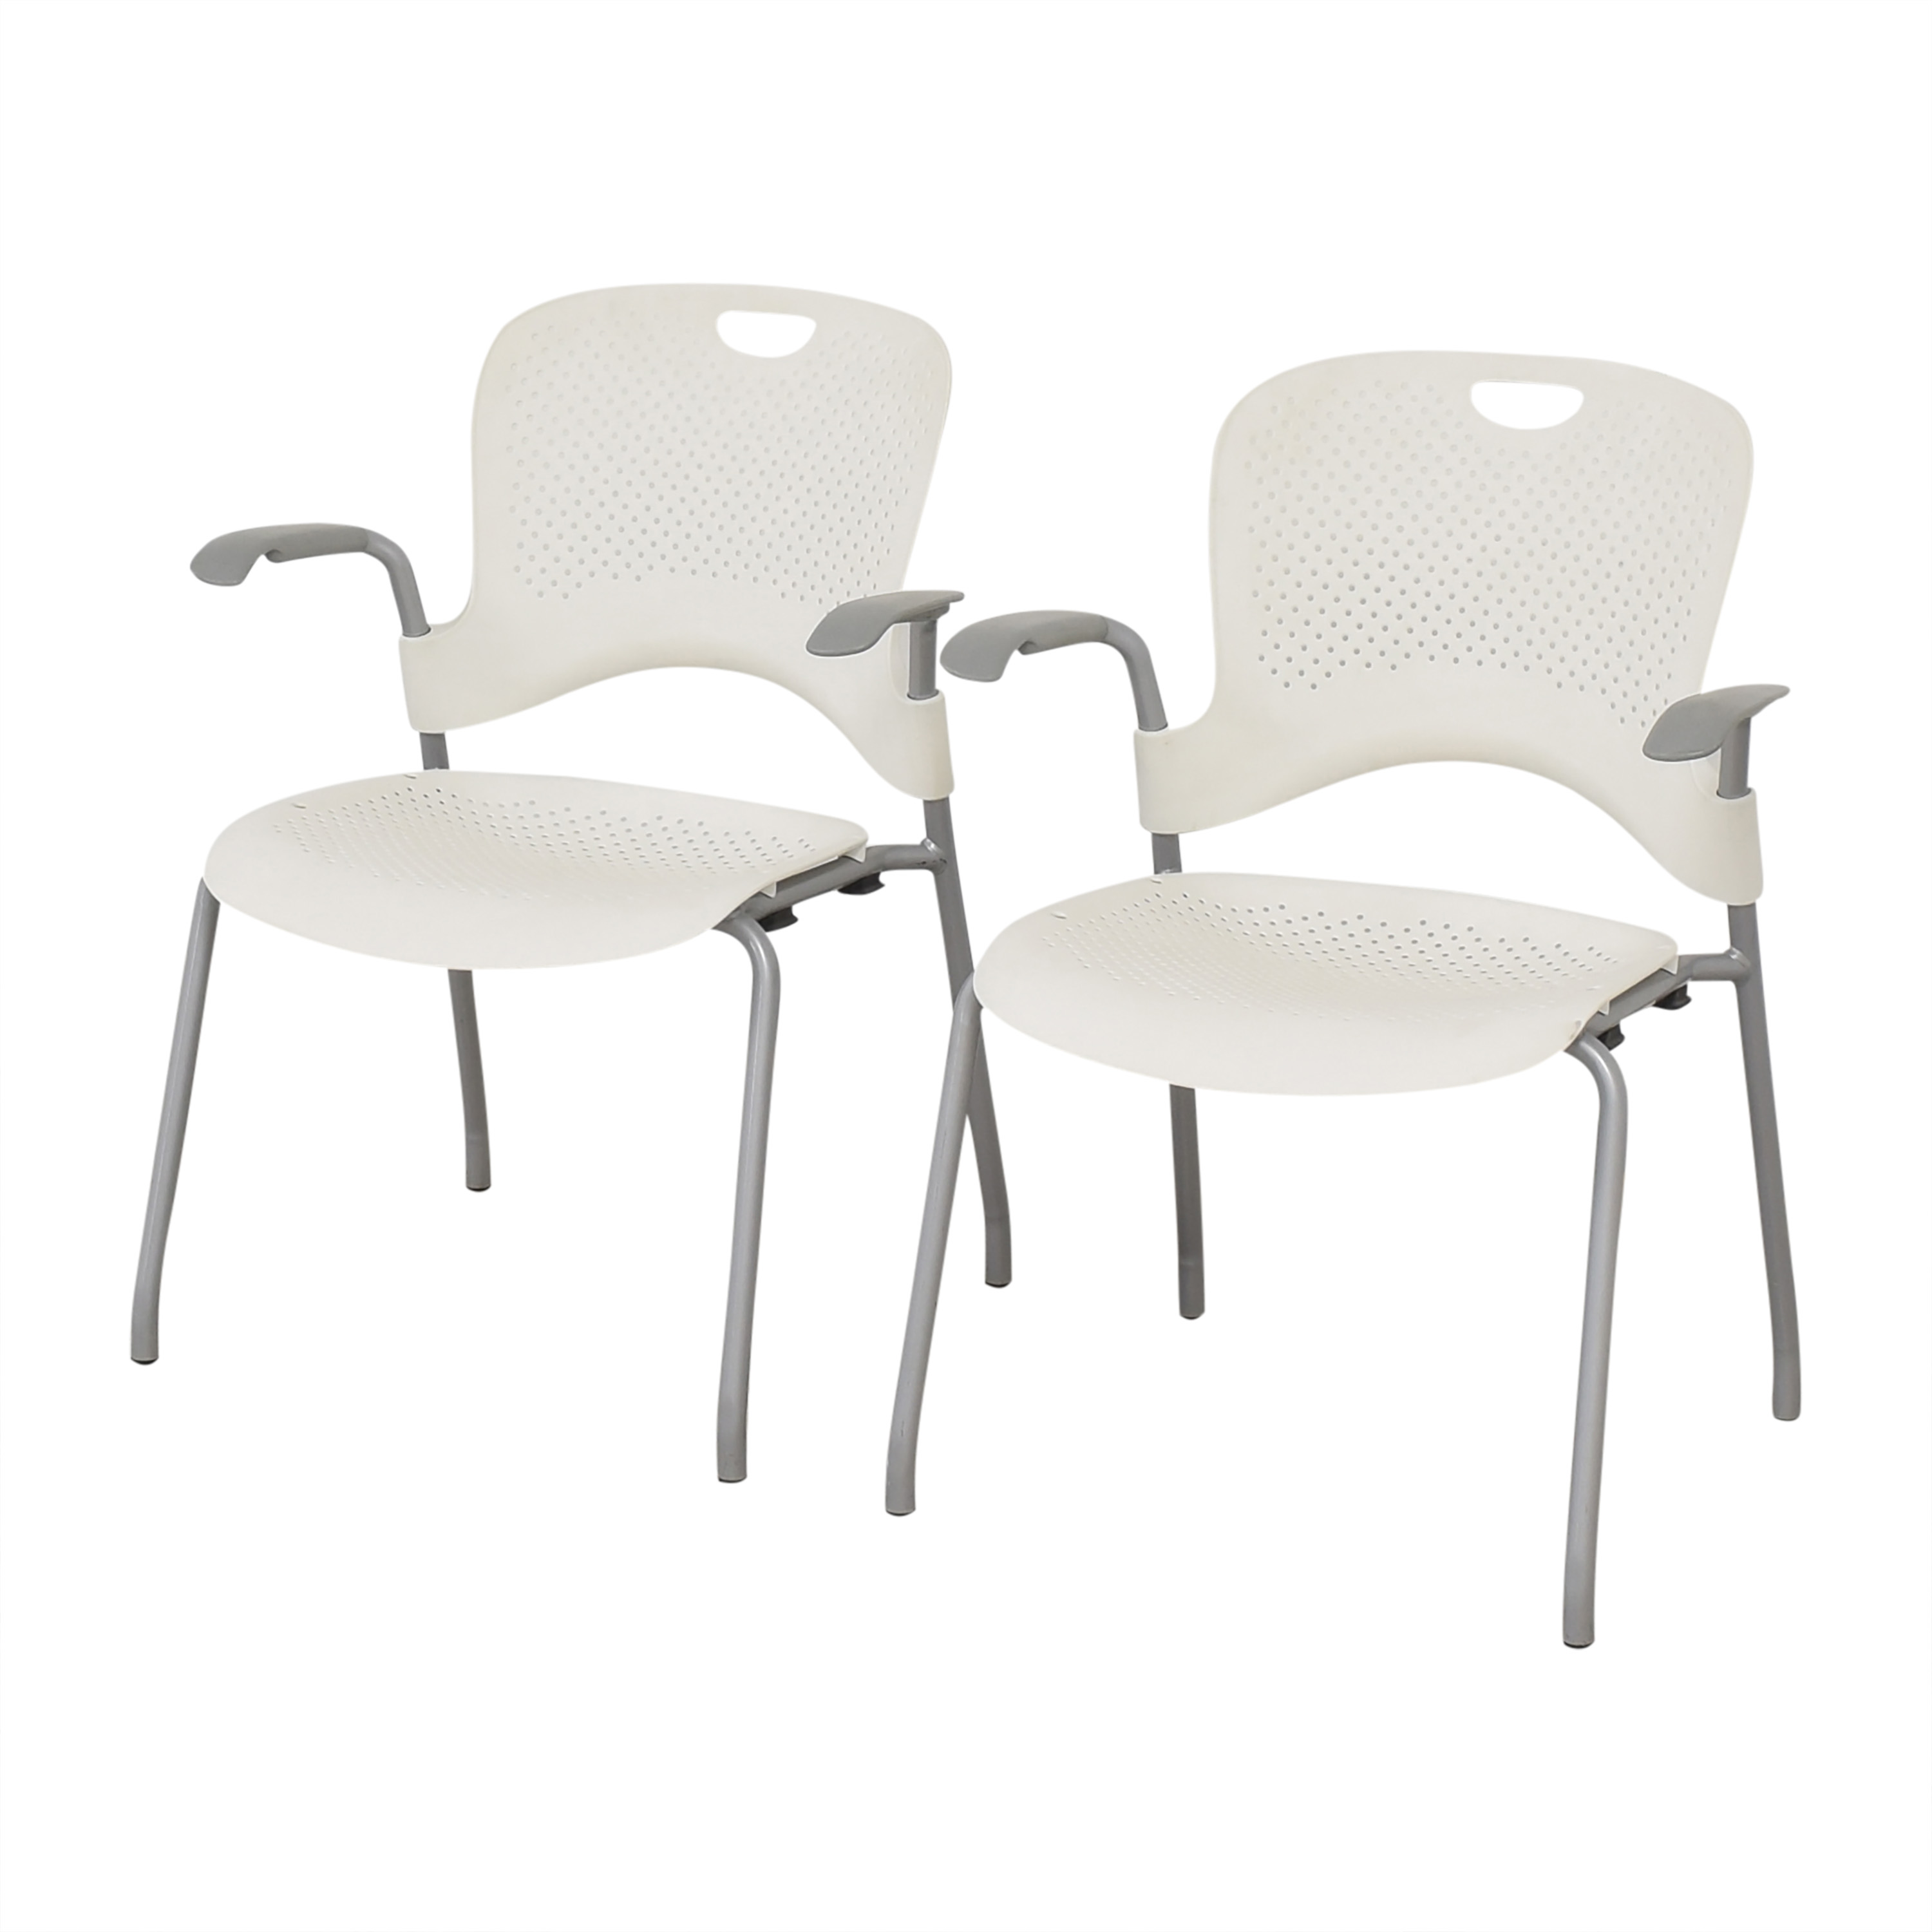 Herman Miller Herman Miller Caper Stacking Chairs Chairs